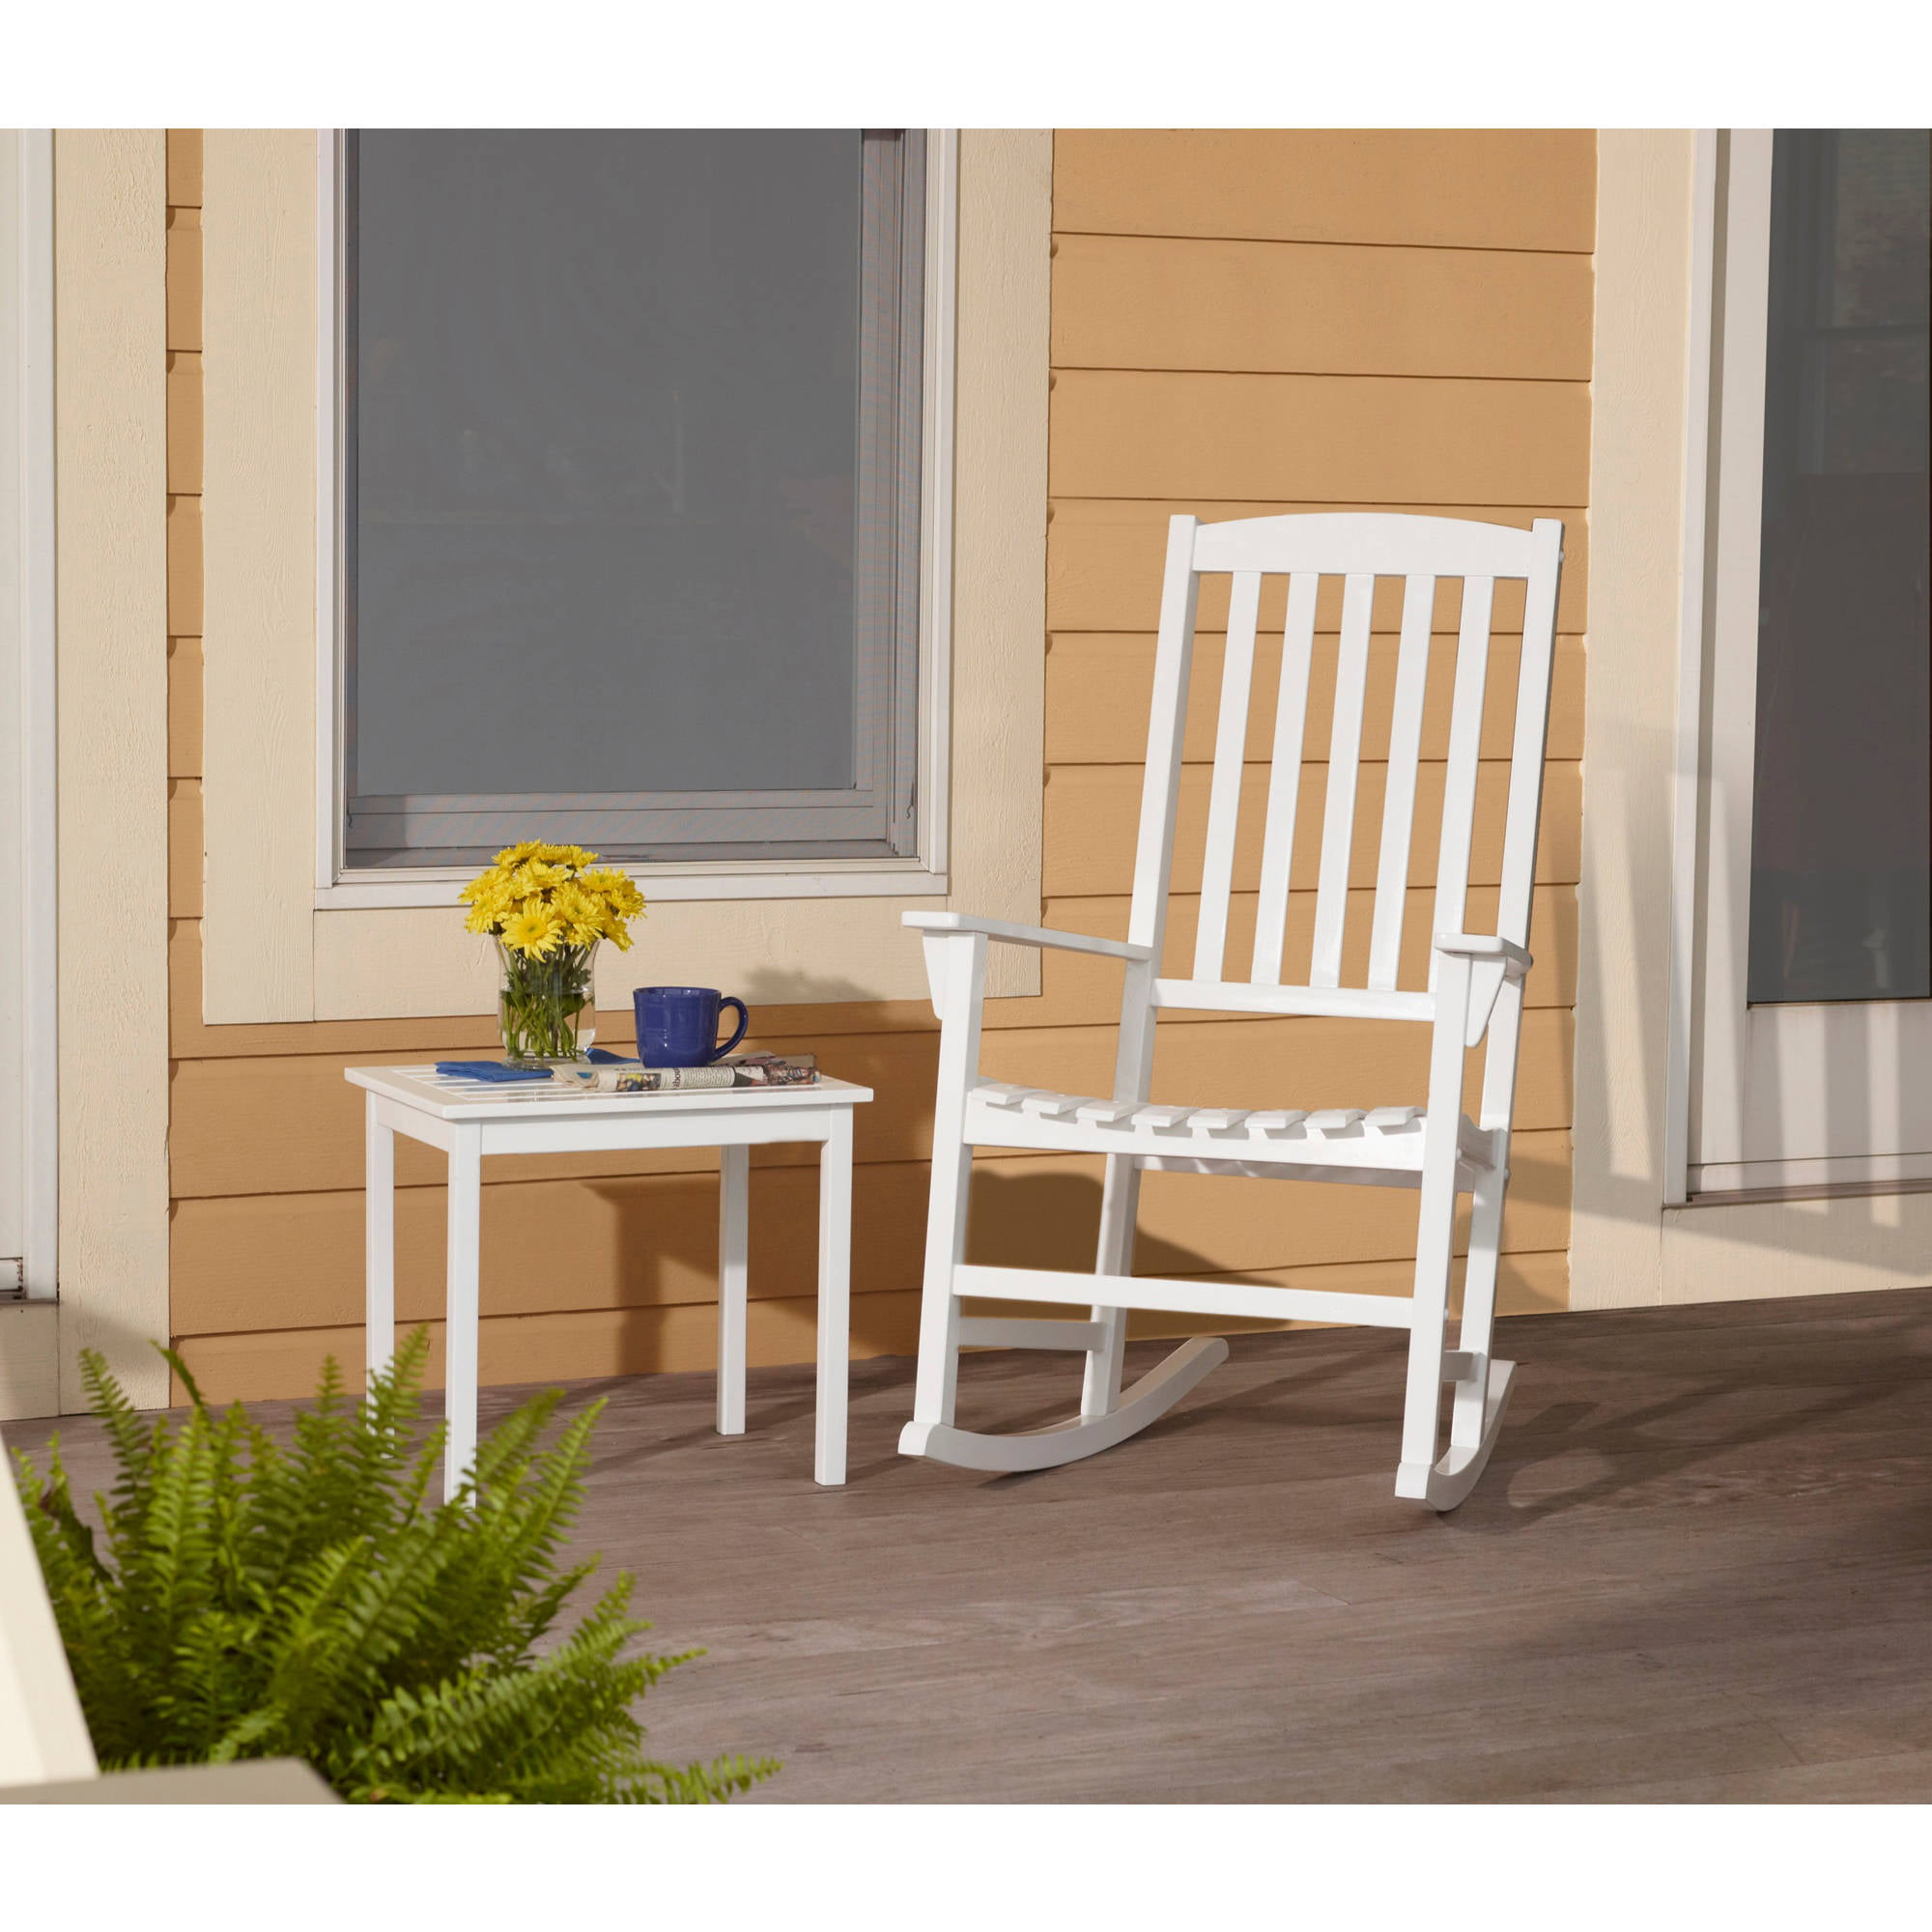 Best Of Patio Furniture Rocking Chair